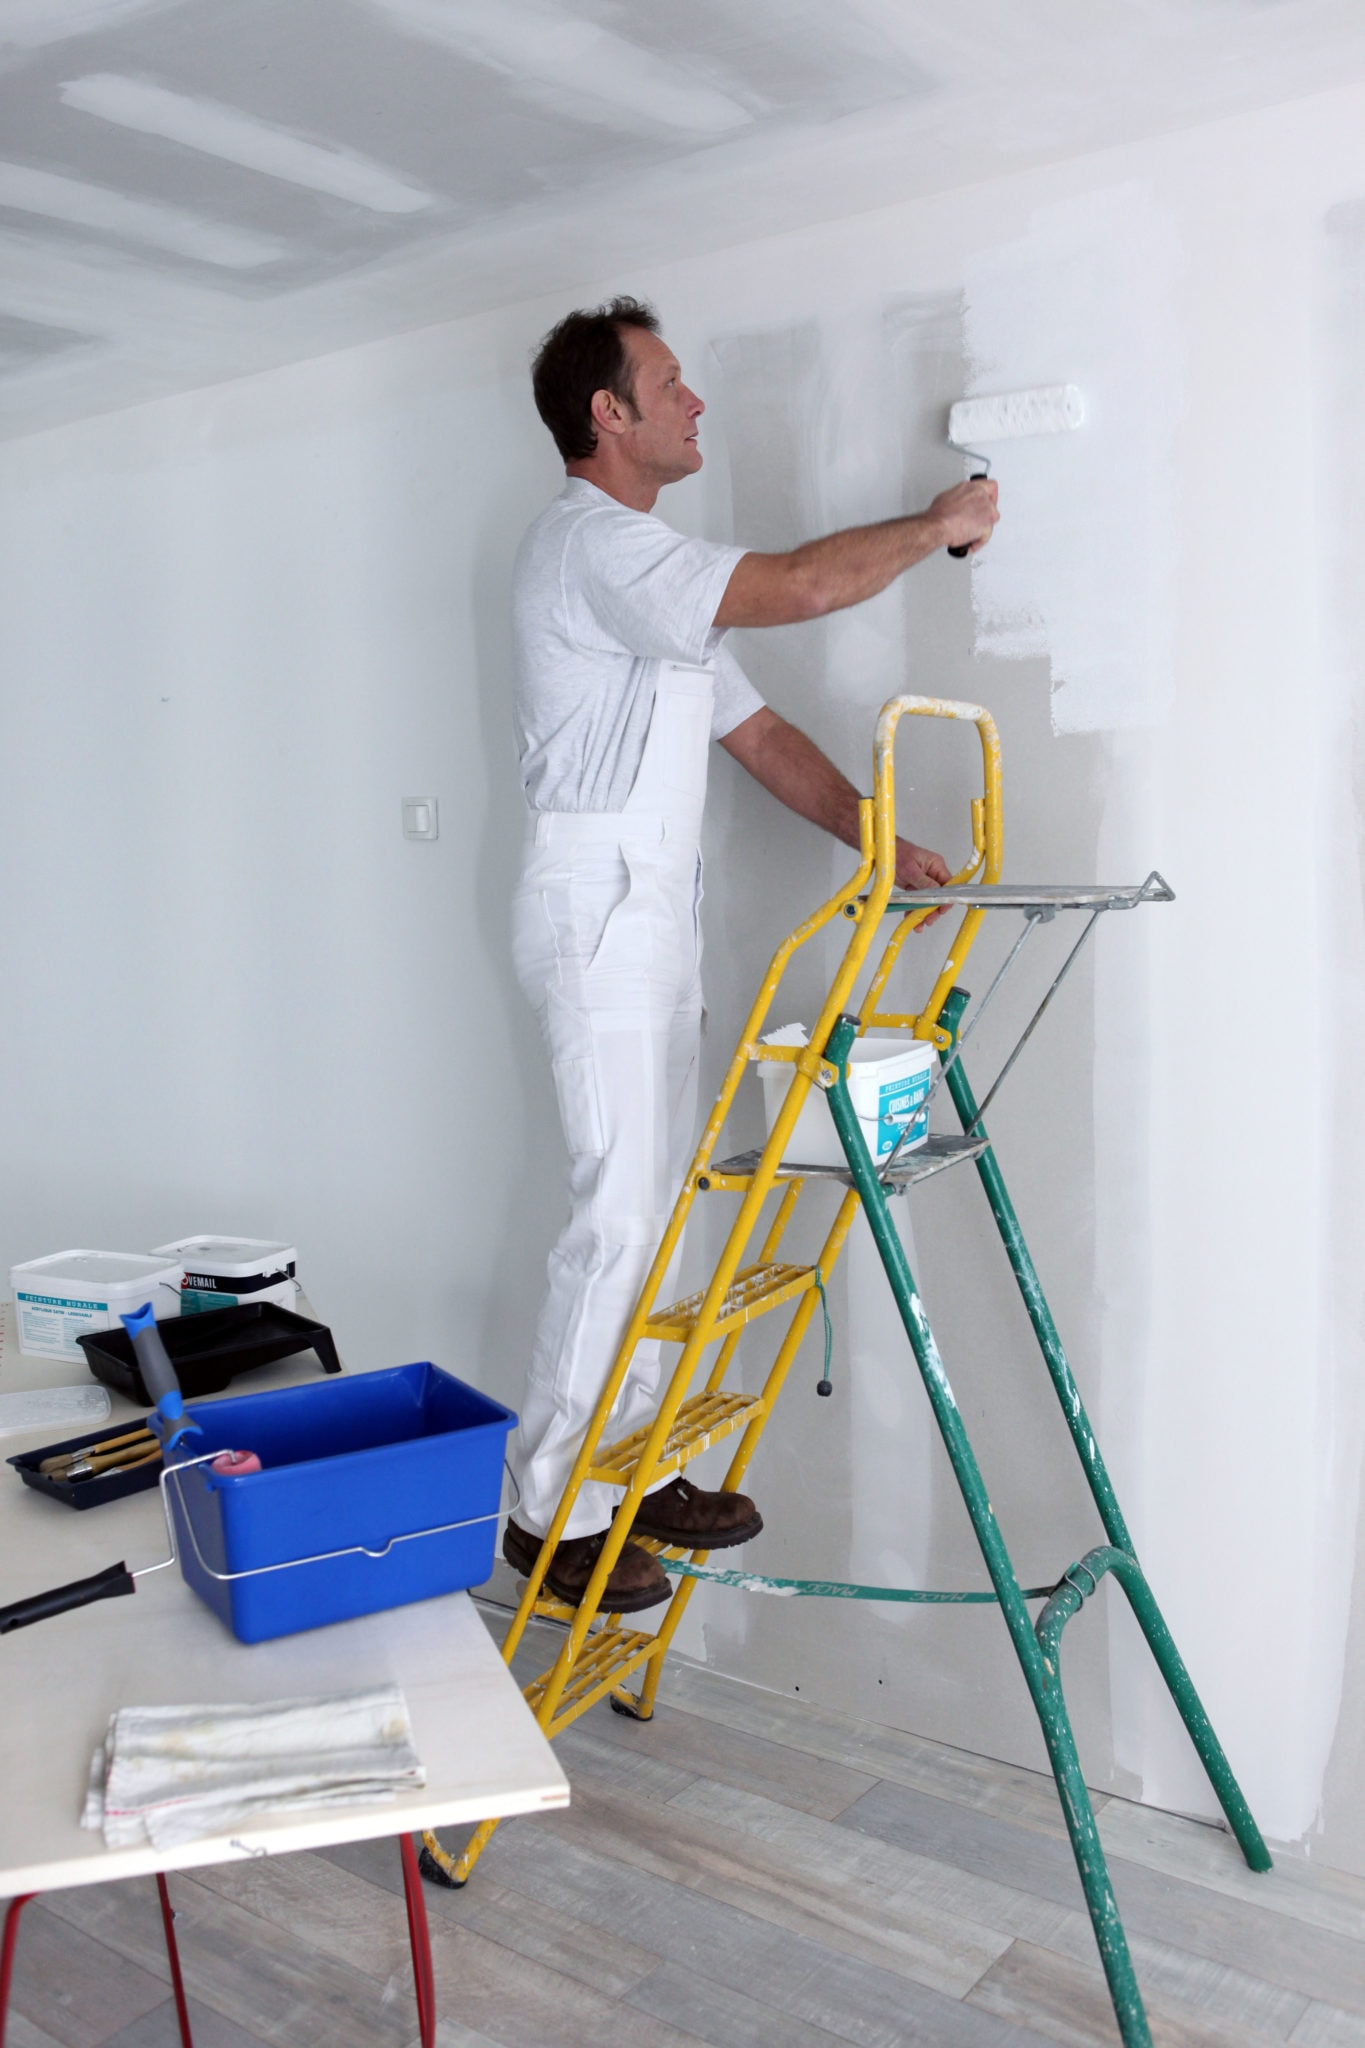 Commercial painting can include both interior and exterior surfaces. Interior walls are prepared and primed before applying paint.